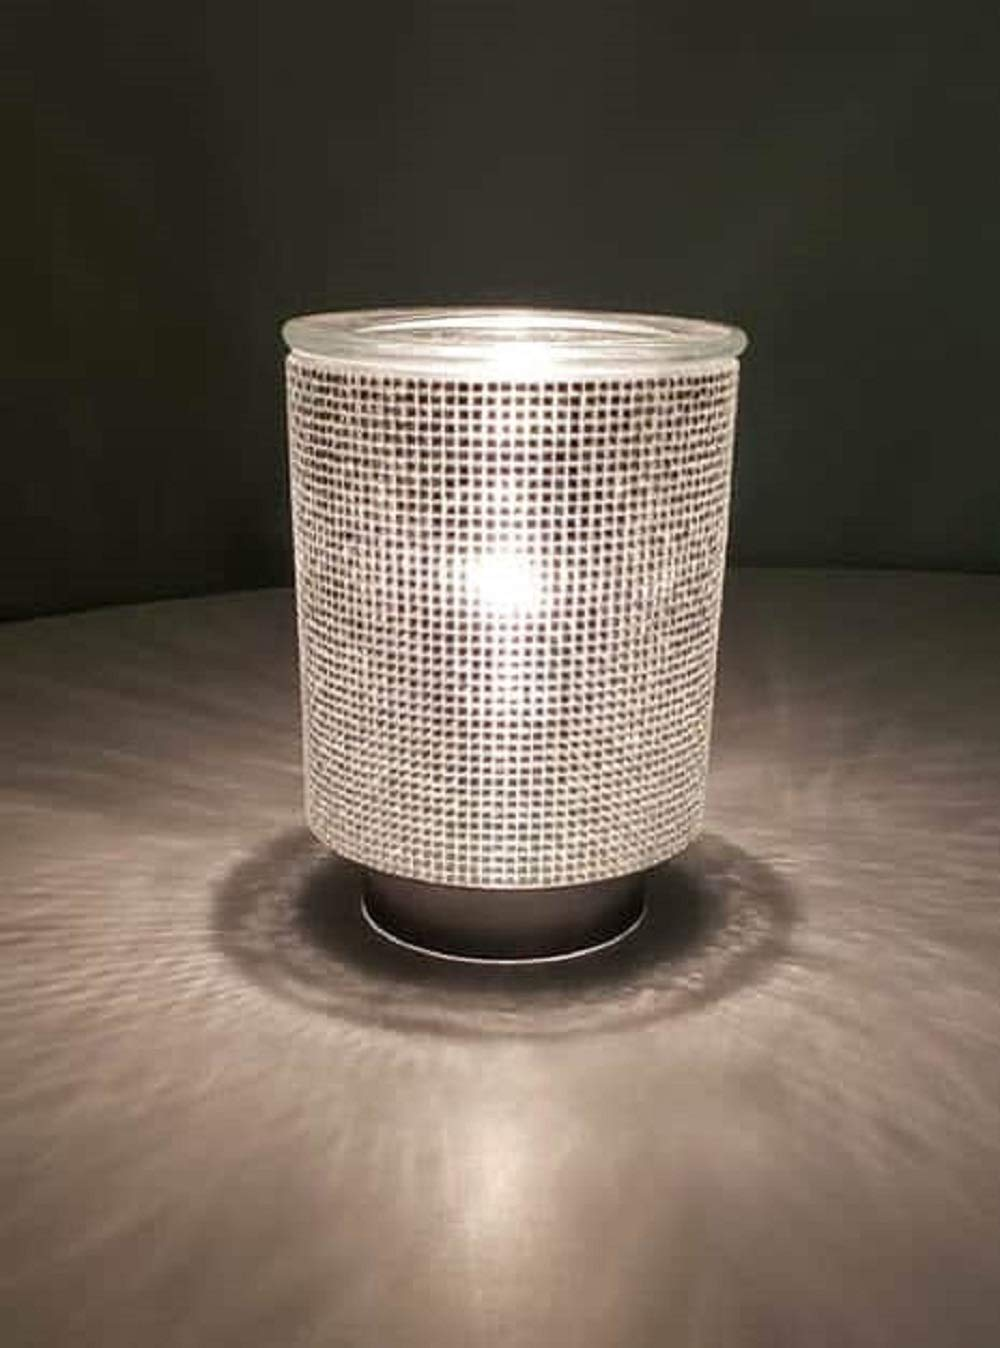 Scentsy Illuminate January 2019 Warmer of The Month